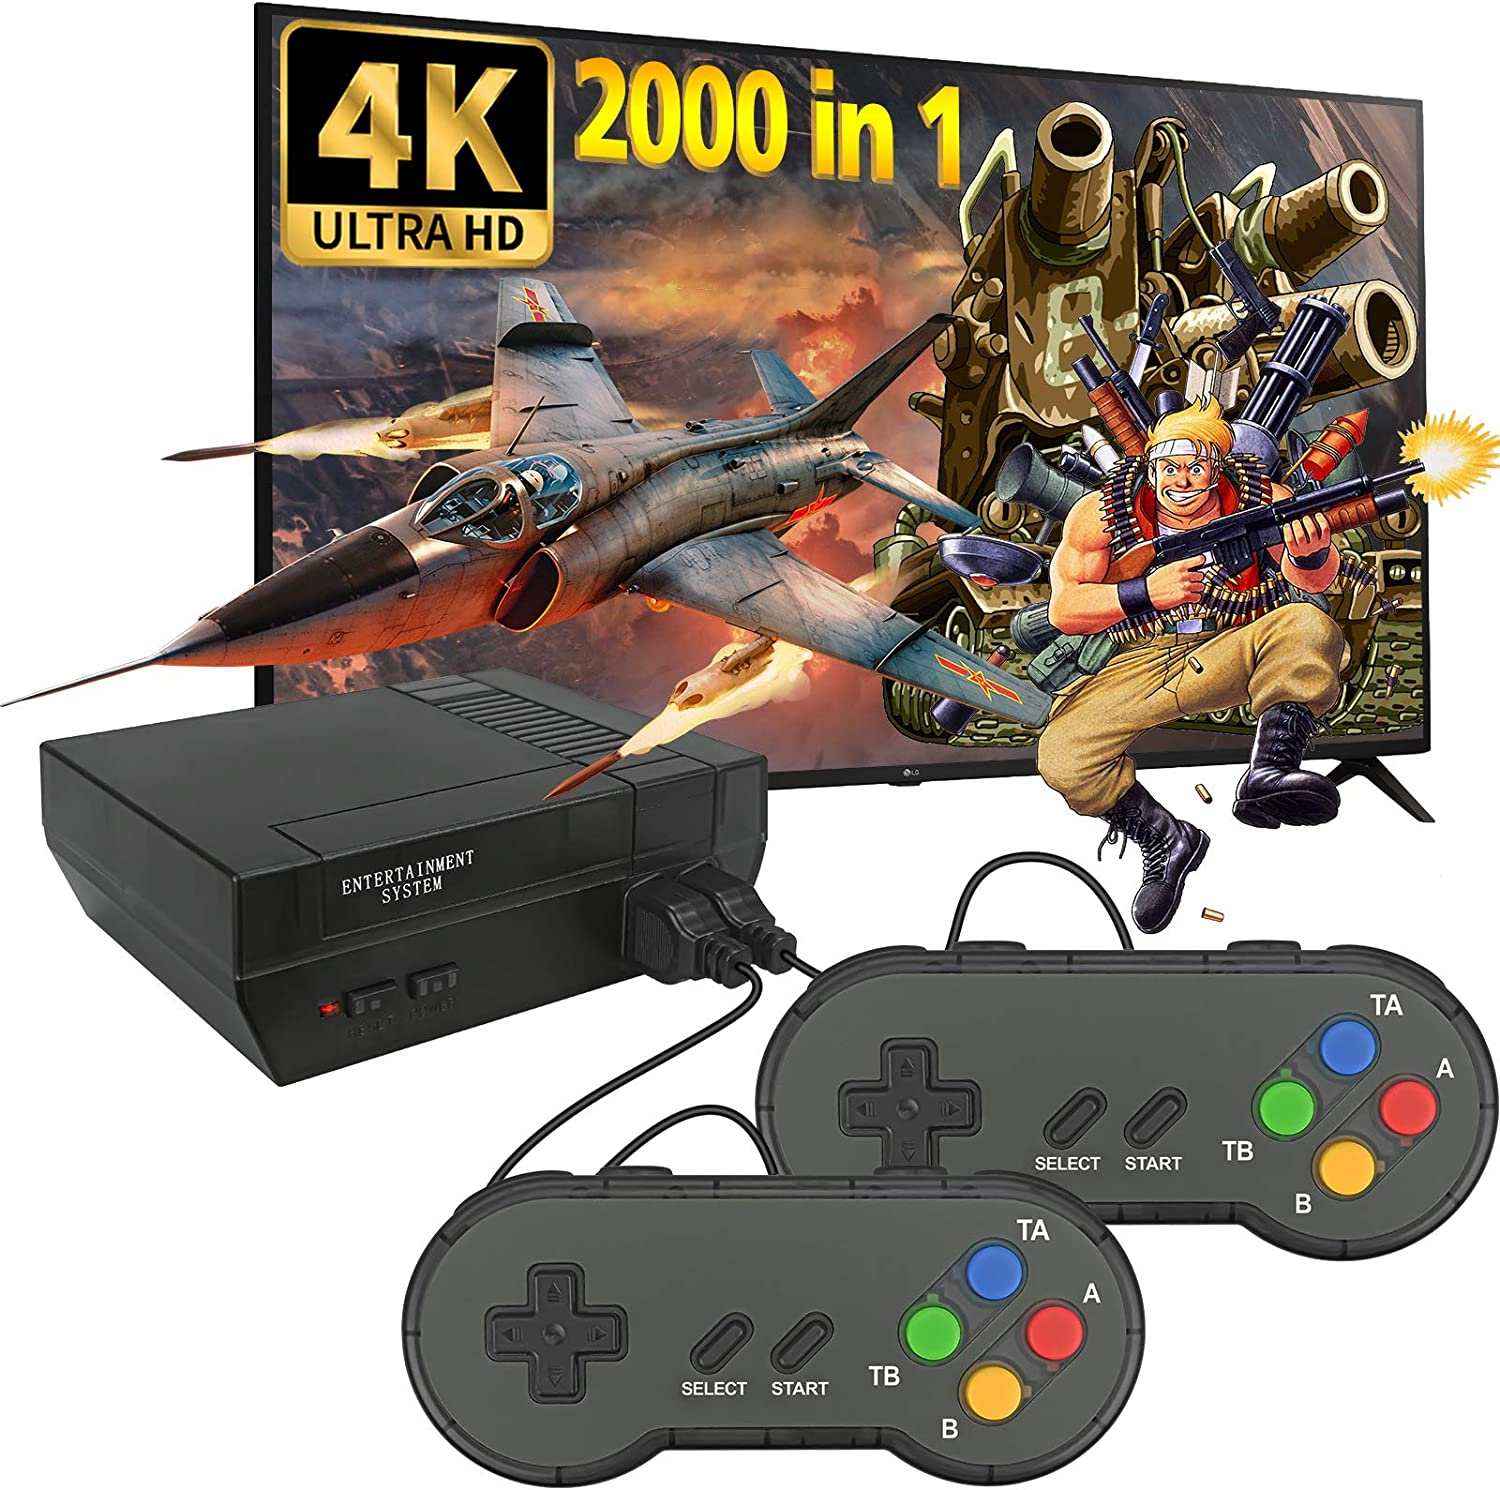 Fadist Retro Game Console, 4K HDMI HD Output Video Game Console, Built in 2000+ Classic Video Games, with 2 Classic Controllers, Plug and Play Games Console, Ideal Gift for Kids, Adult, Friend, Lover